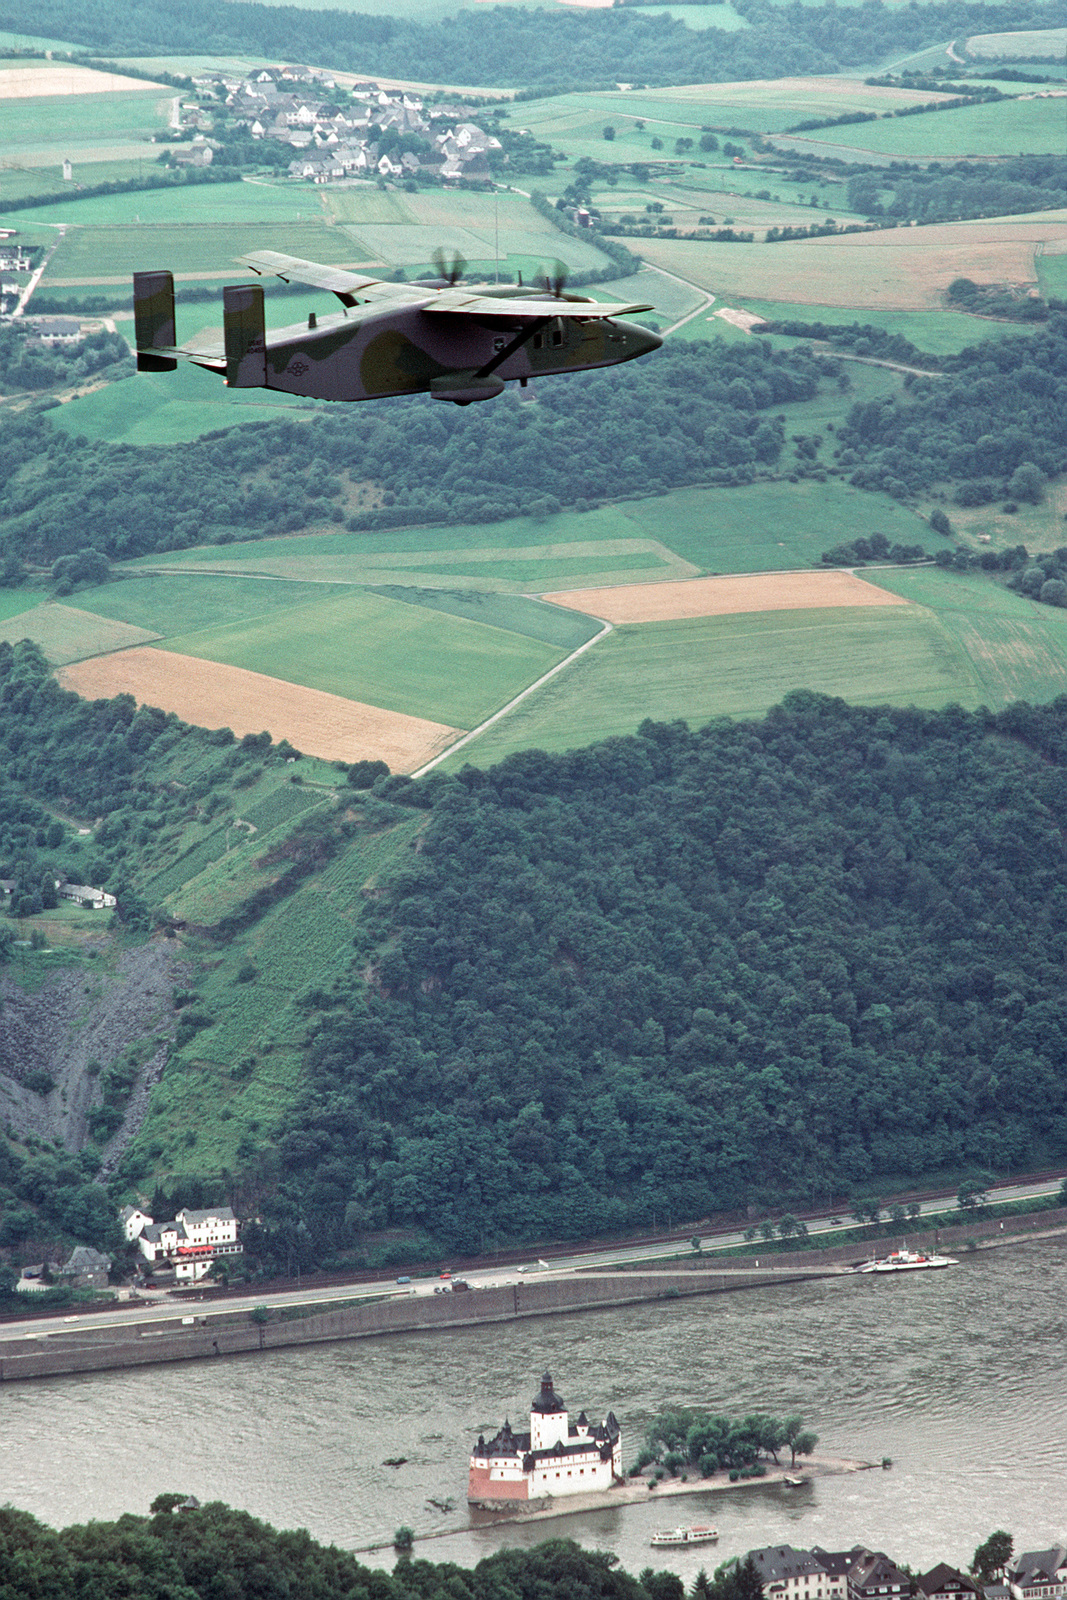 A 10th Military Airlift Squadron C 23 Sherpa Aircraft Flies Over The Airplane Parts Rhein River En